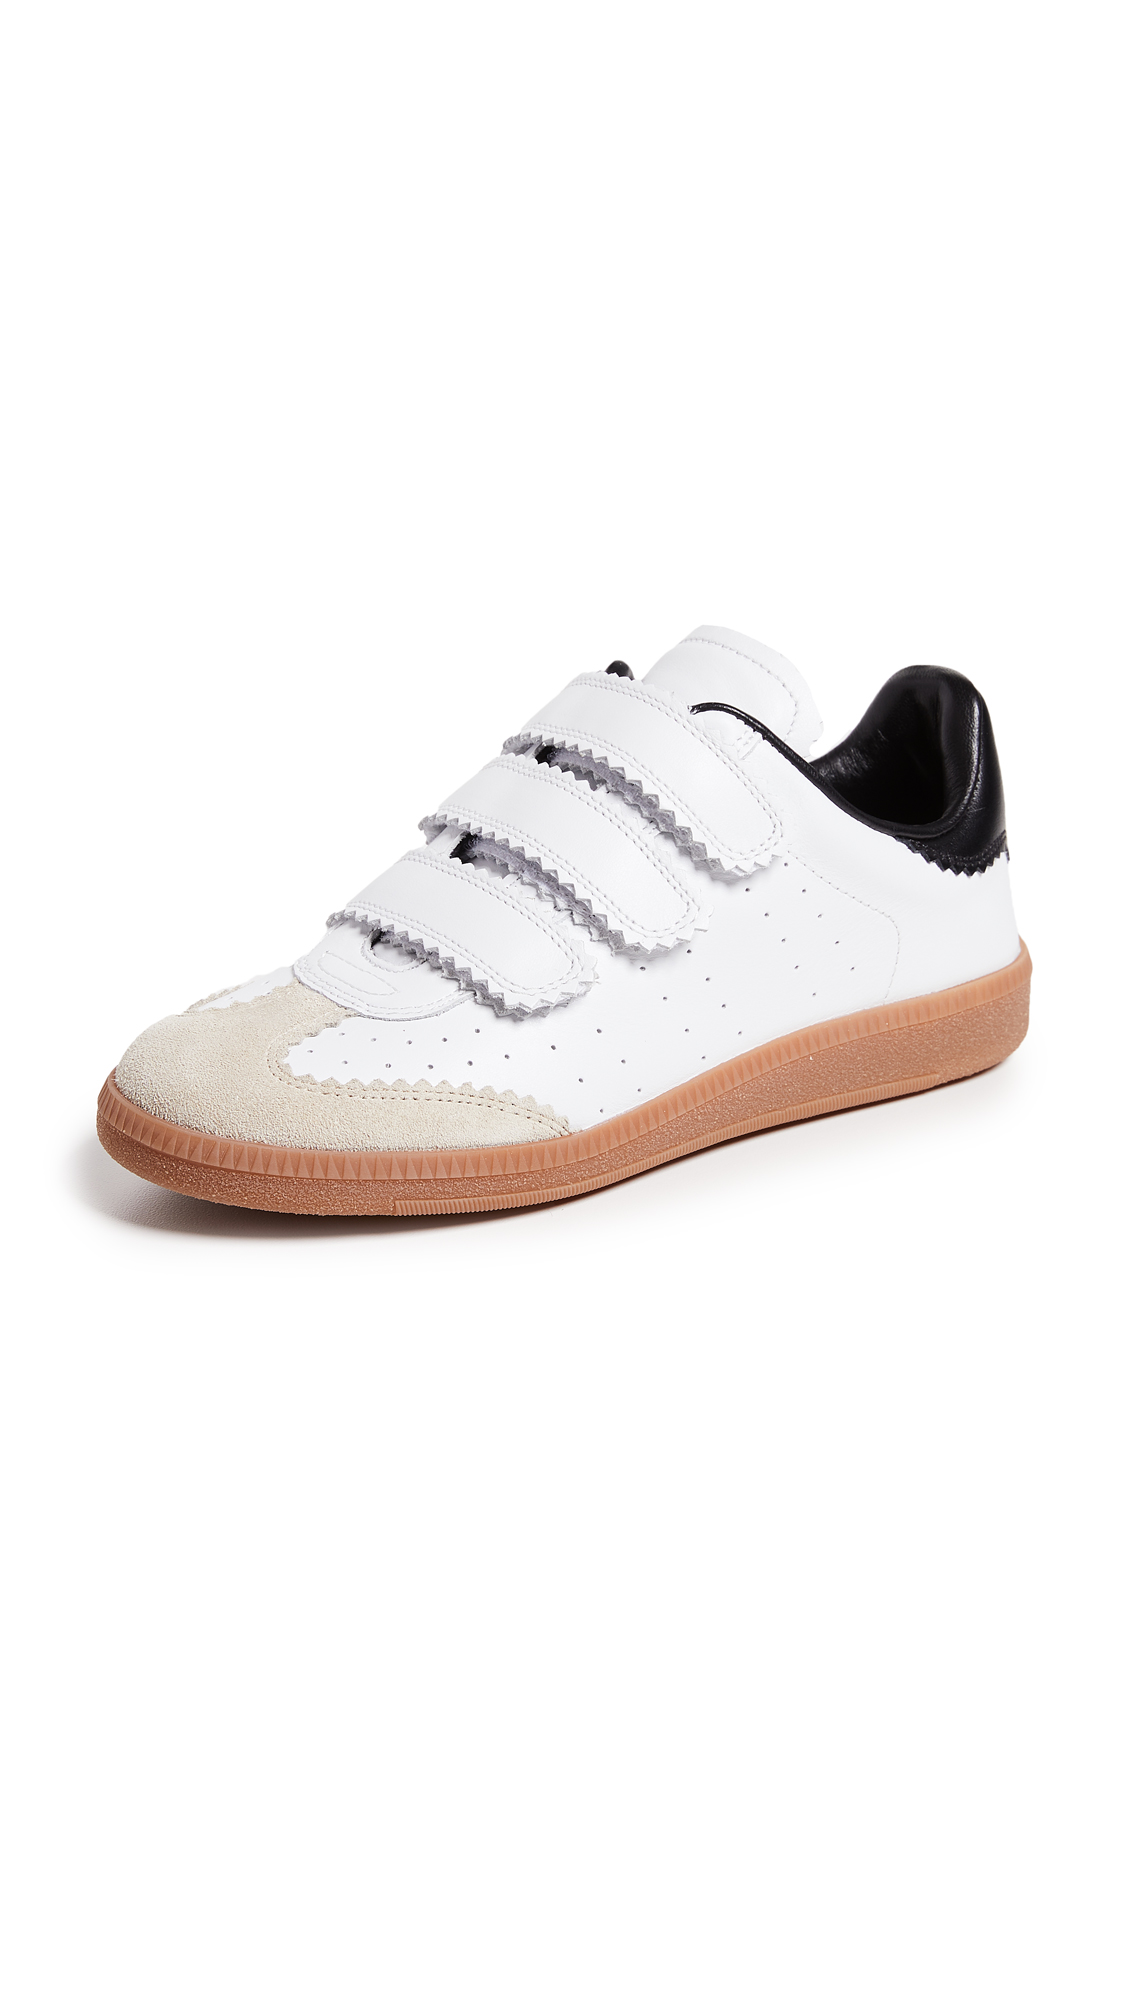 Isabel Marant Beth Sneakers - White